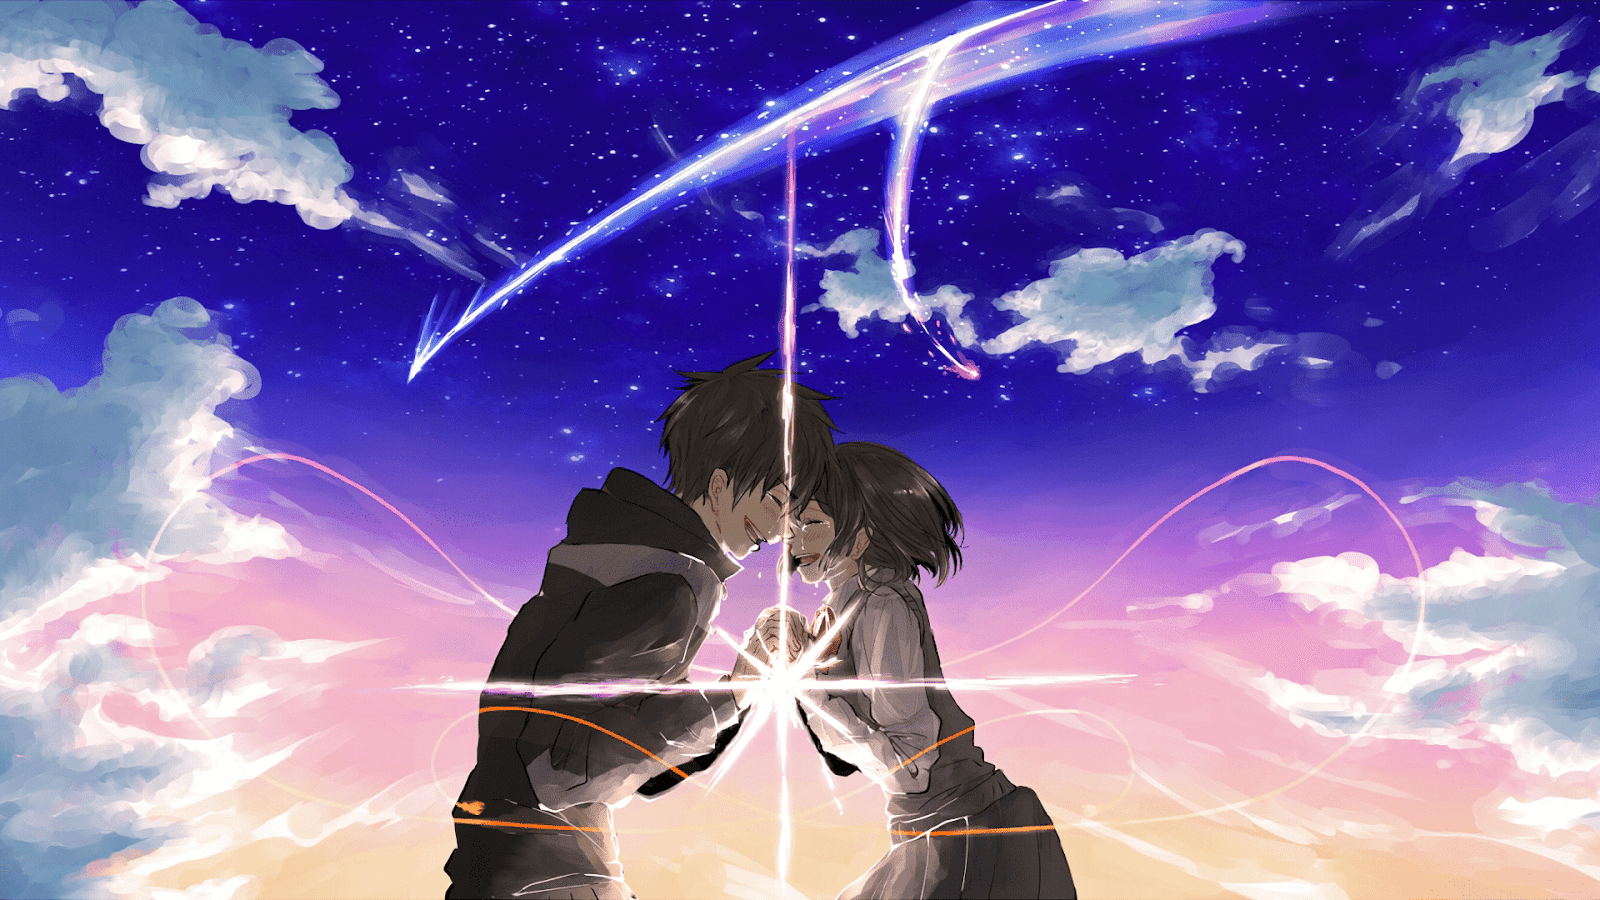 AowVN%2B%252826%2529 - [ Hình Nền ] Anime Your Name. - Kimi no Nawa full HD cực đẹp | Anime Wallpaper